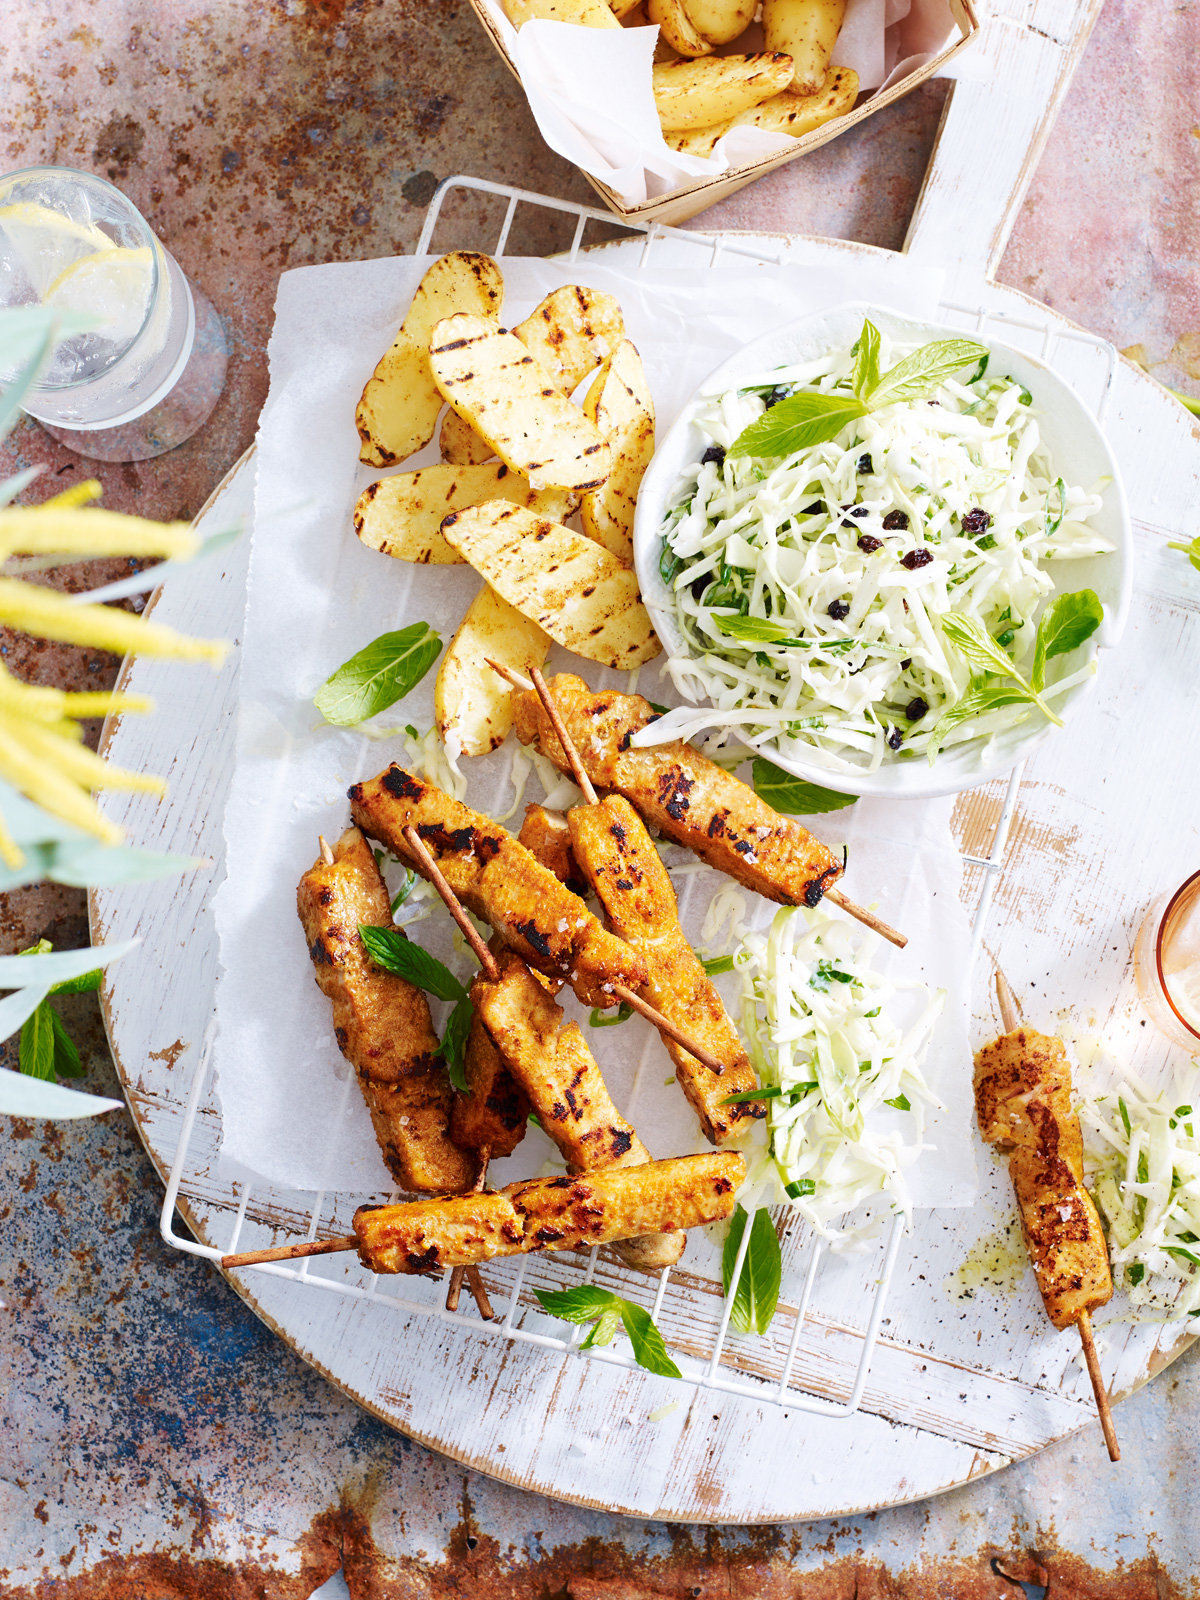 Andy-Lewis-food-photographer-©-photography_Lilydale_Spring_Satay-&-Coconut-Chicken-Breast-Skewers-With-Green-Apple-Coleslaw-&-BBQ-Kipfler-Potatoes.jpg